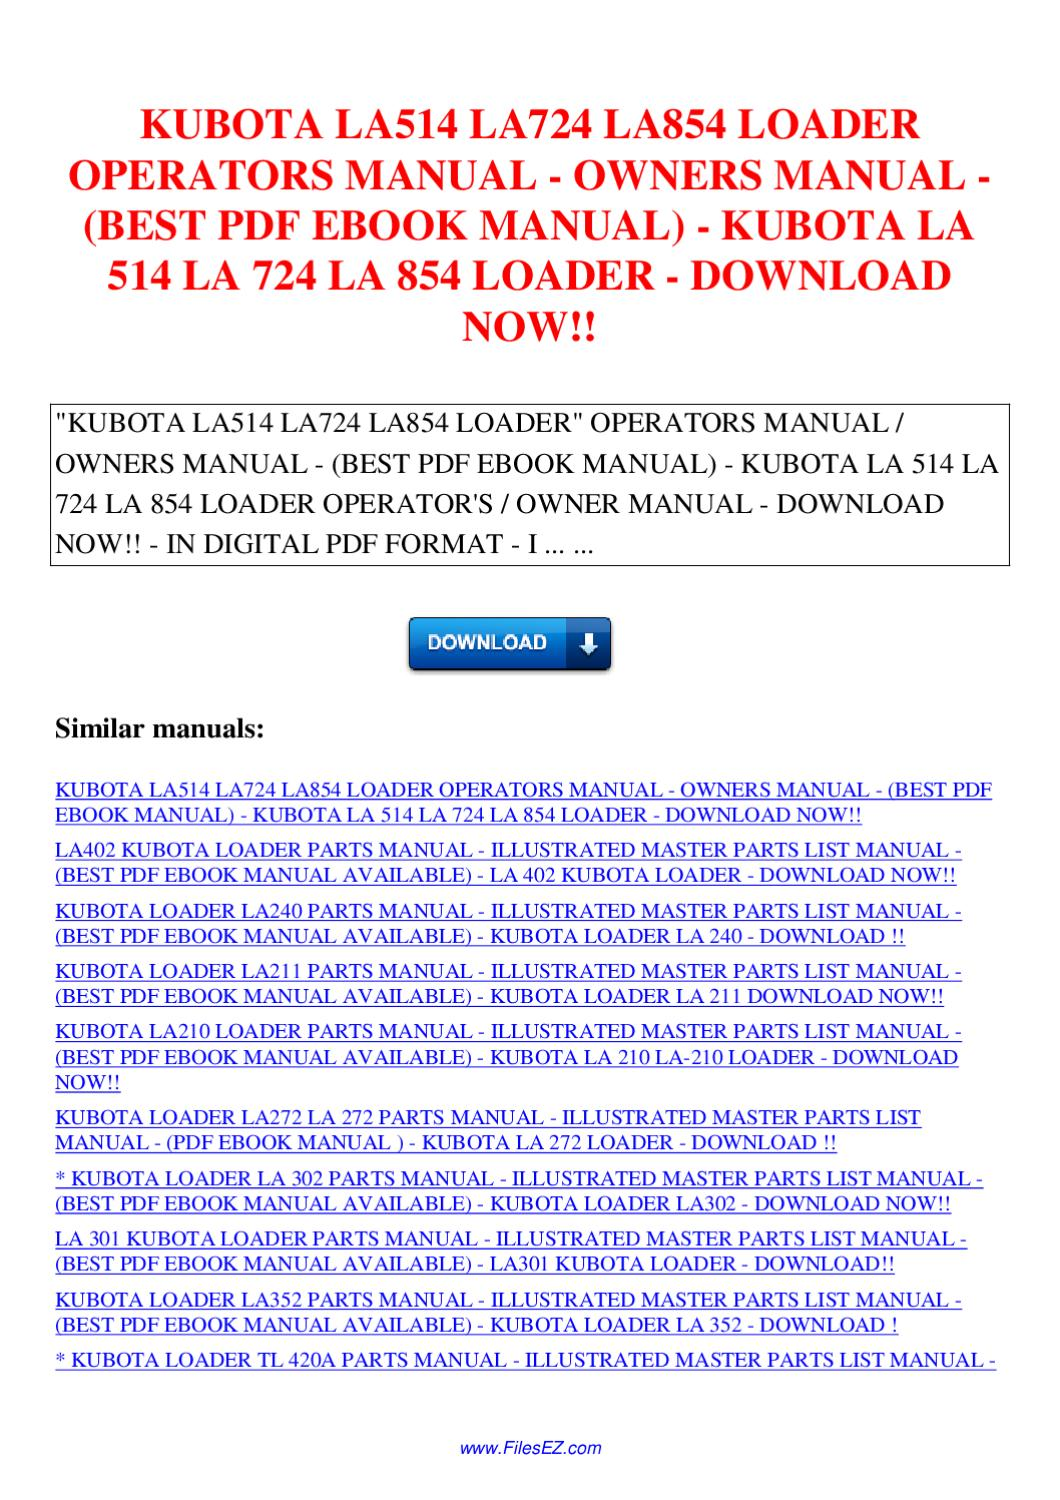 KUBOTA LA514 LA724 LA854 LOADER OPERATORS MANUAL OWNERS MANUAL EBOOK MANUAL  KUBOTA LA 514 LA by Nana Hong - issuu